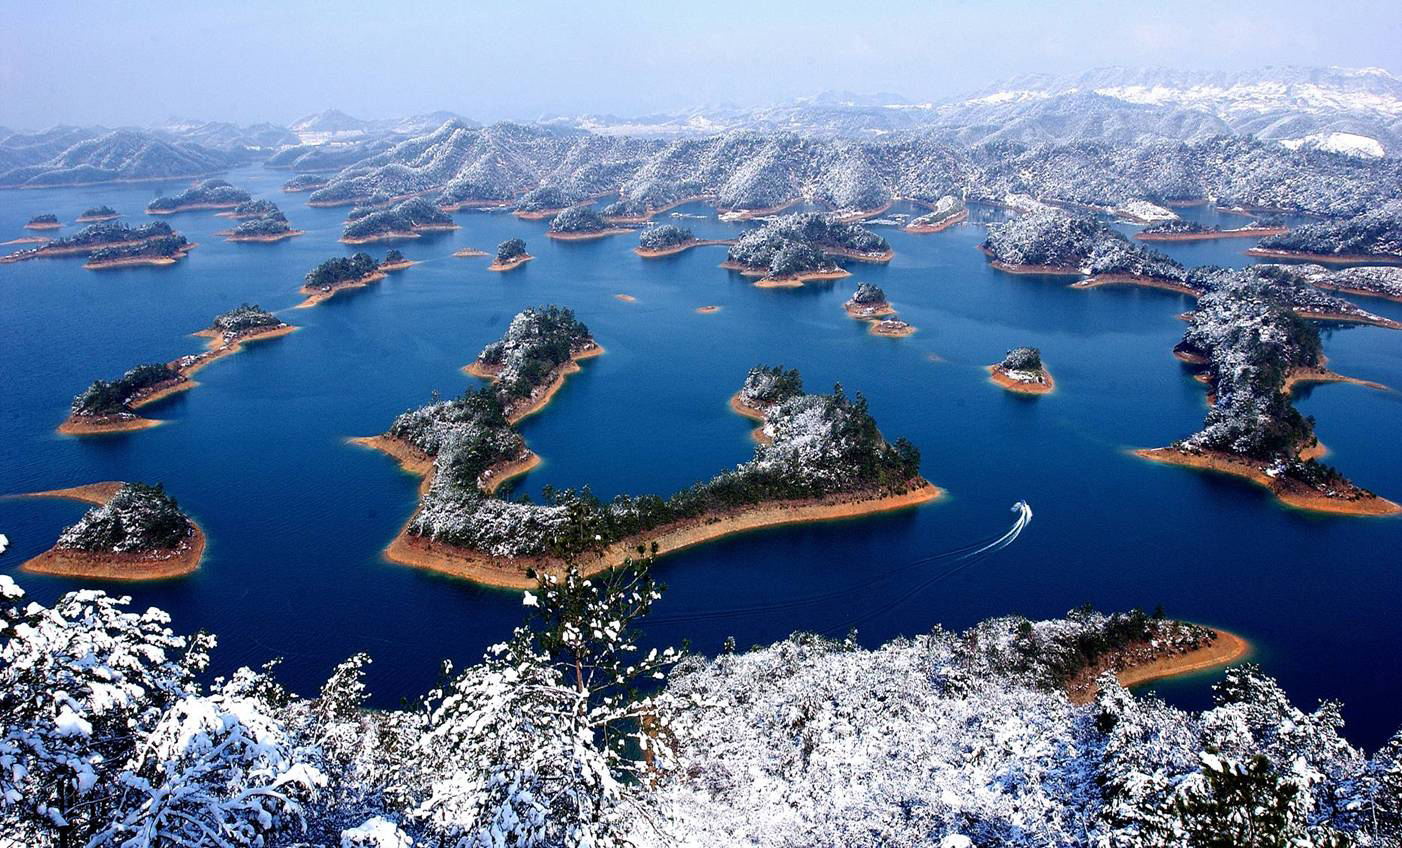 15 china China tours: a beijing-based travel agency provides china tour packages for individual, couple, family and group any china tours here are customizable according to your preference.